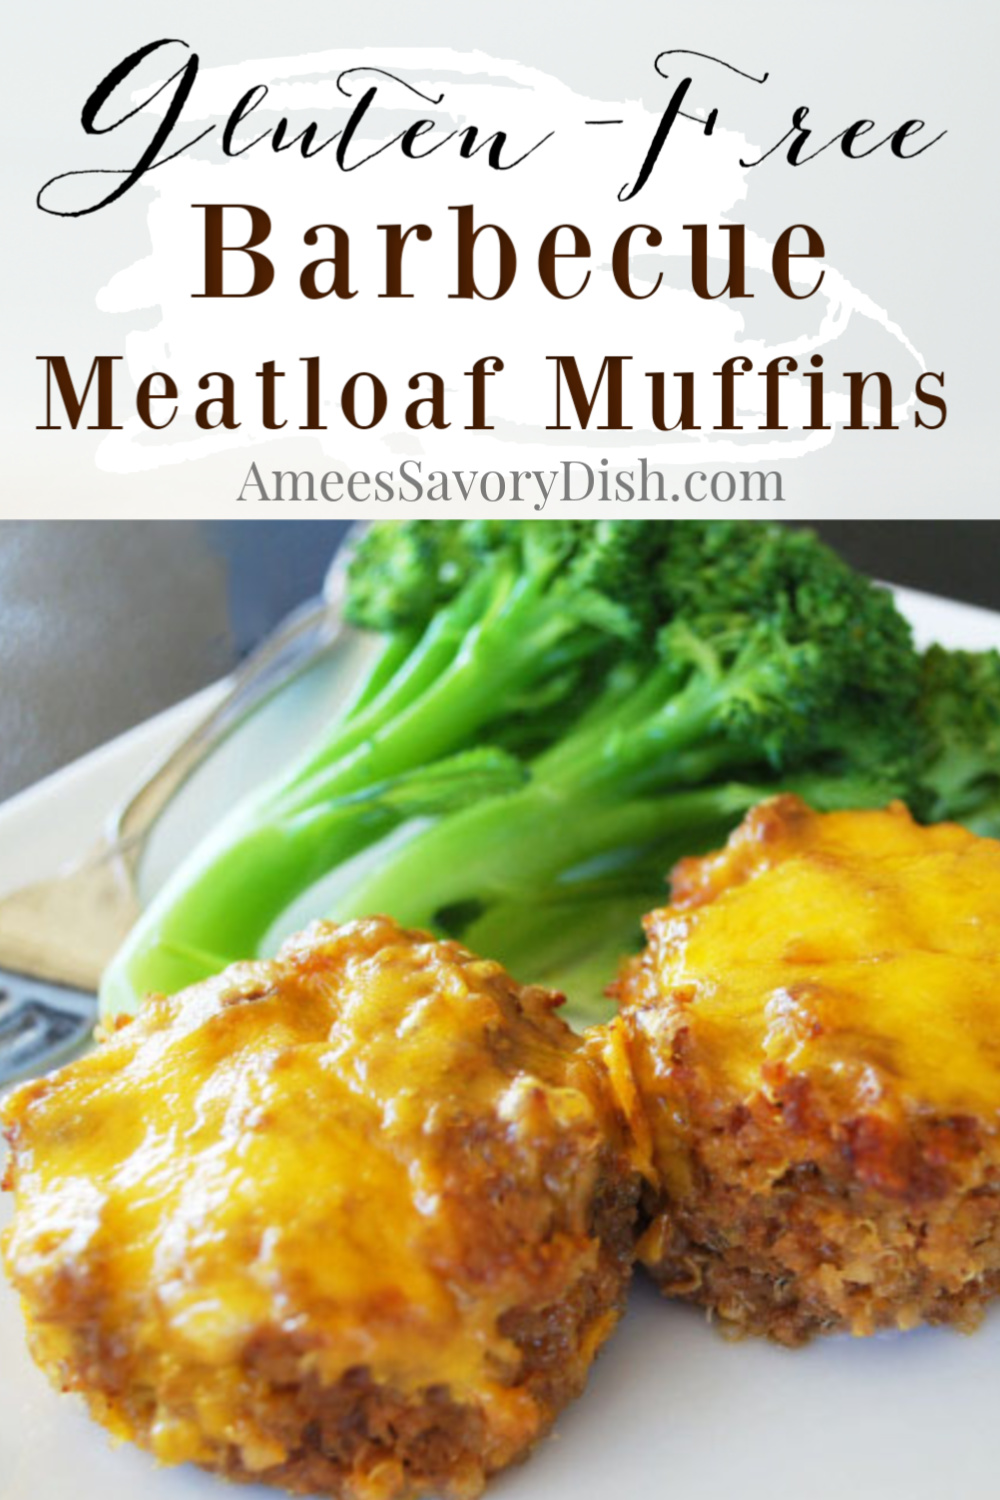 Barbecue meatloaf muffins full of flavor, made with lean ground beef, quinoa, and cheese. These gluten-free cheesy mini meatloaves are fast, easy, and delicious! #meatloafmuffins #minimeatloaf #beefrecipe #meatloaf #barbecuemeatloaf via @Ameessavorydish